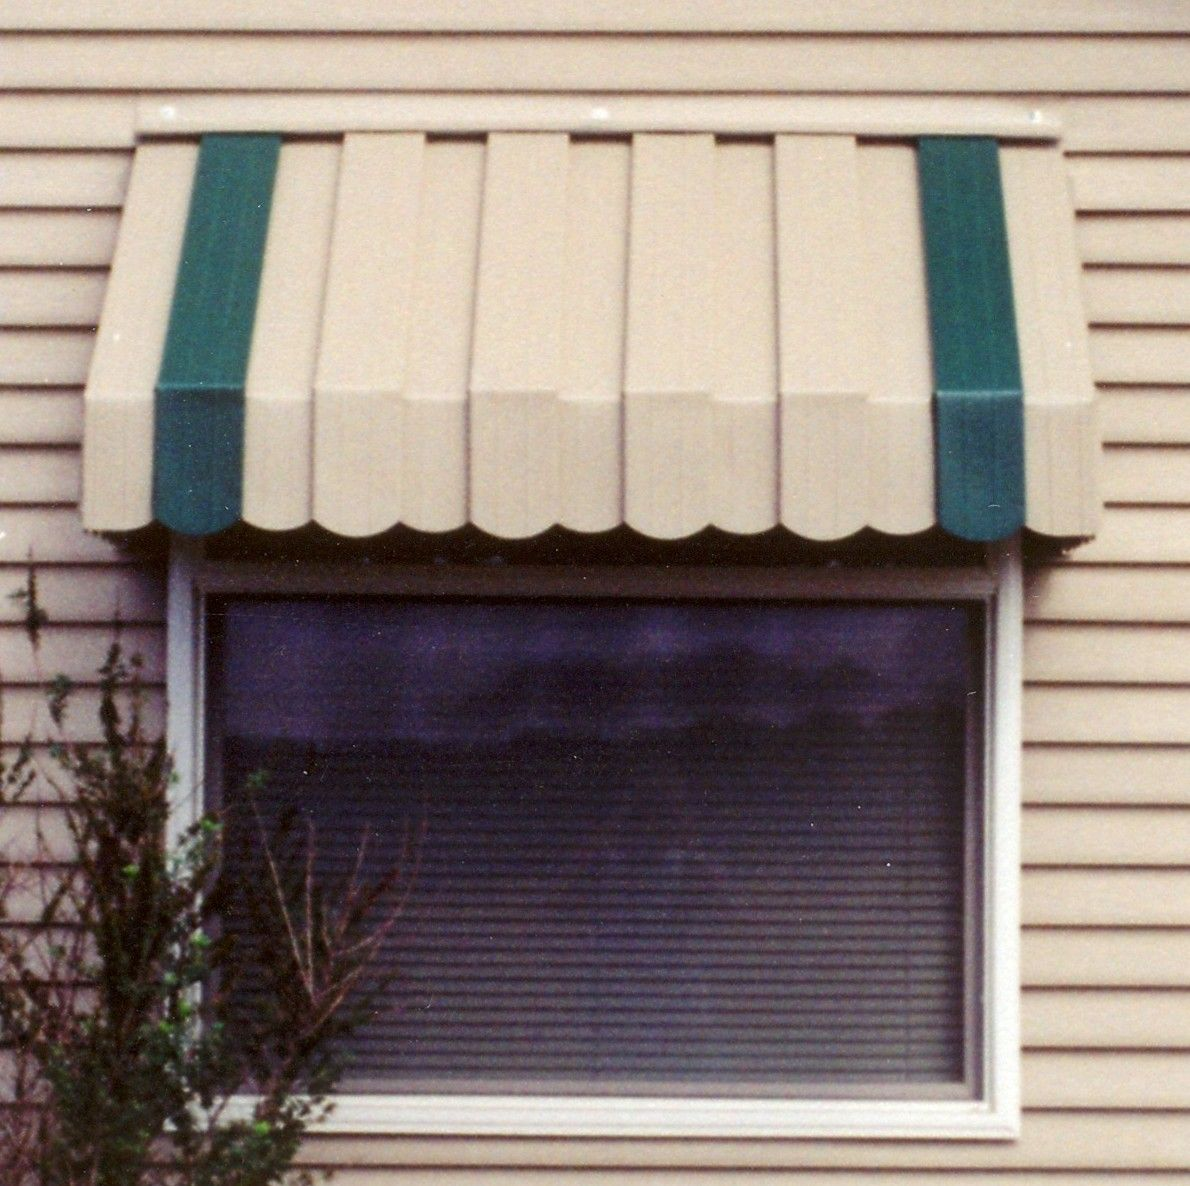 awning standing awnings metal img elite seam corrugated